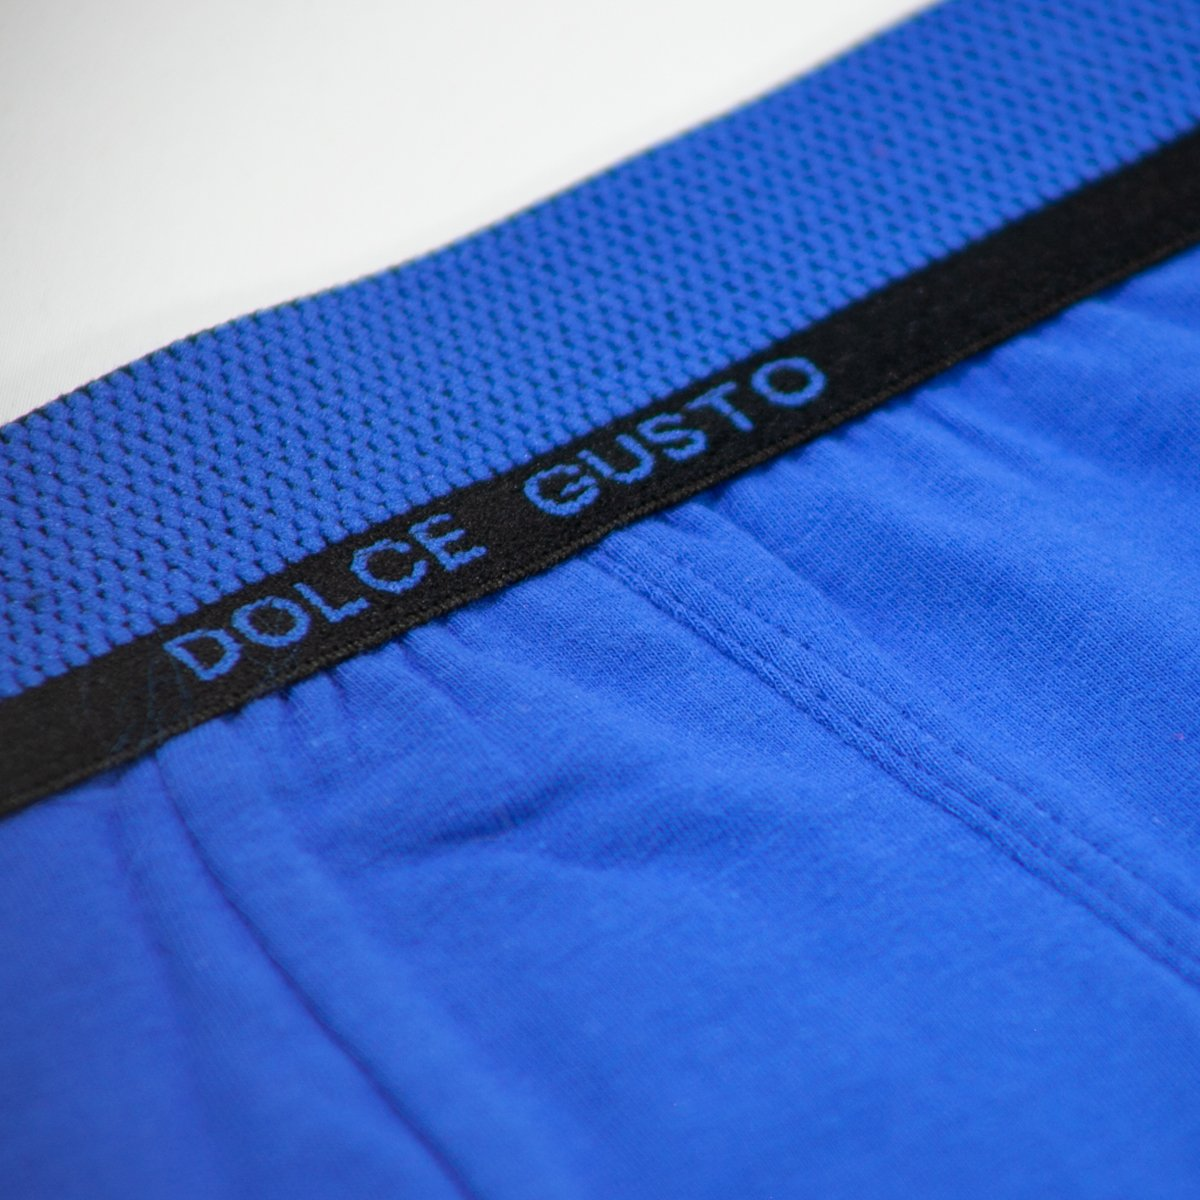 Dolce Gusto Men's Boxers Brief 3-Pack - XXXL by Love Hana (Image #8)